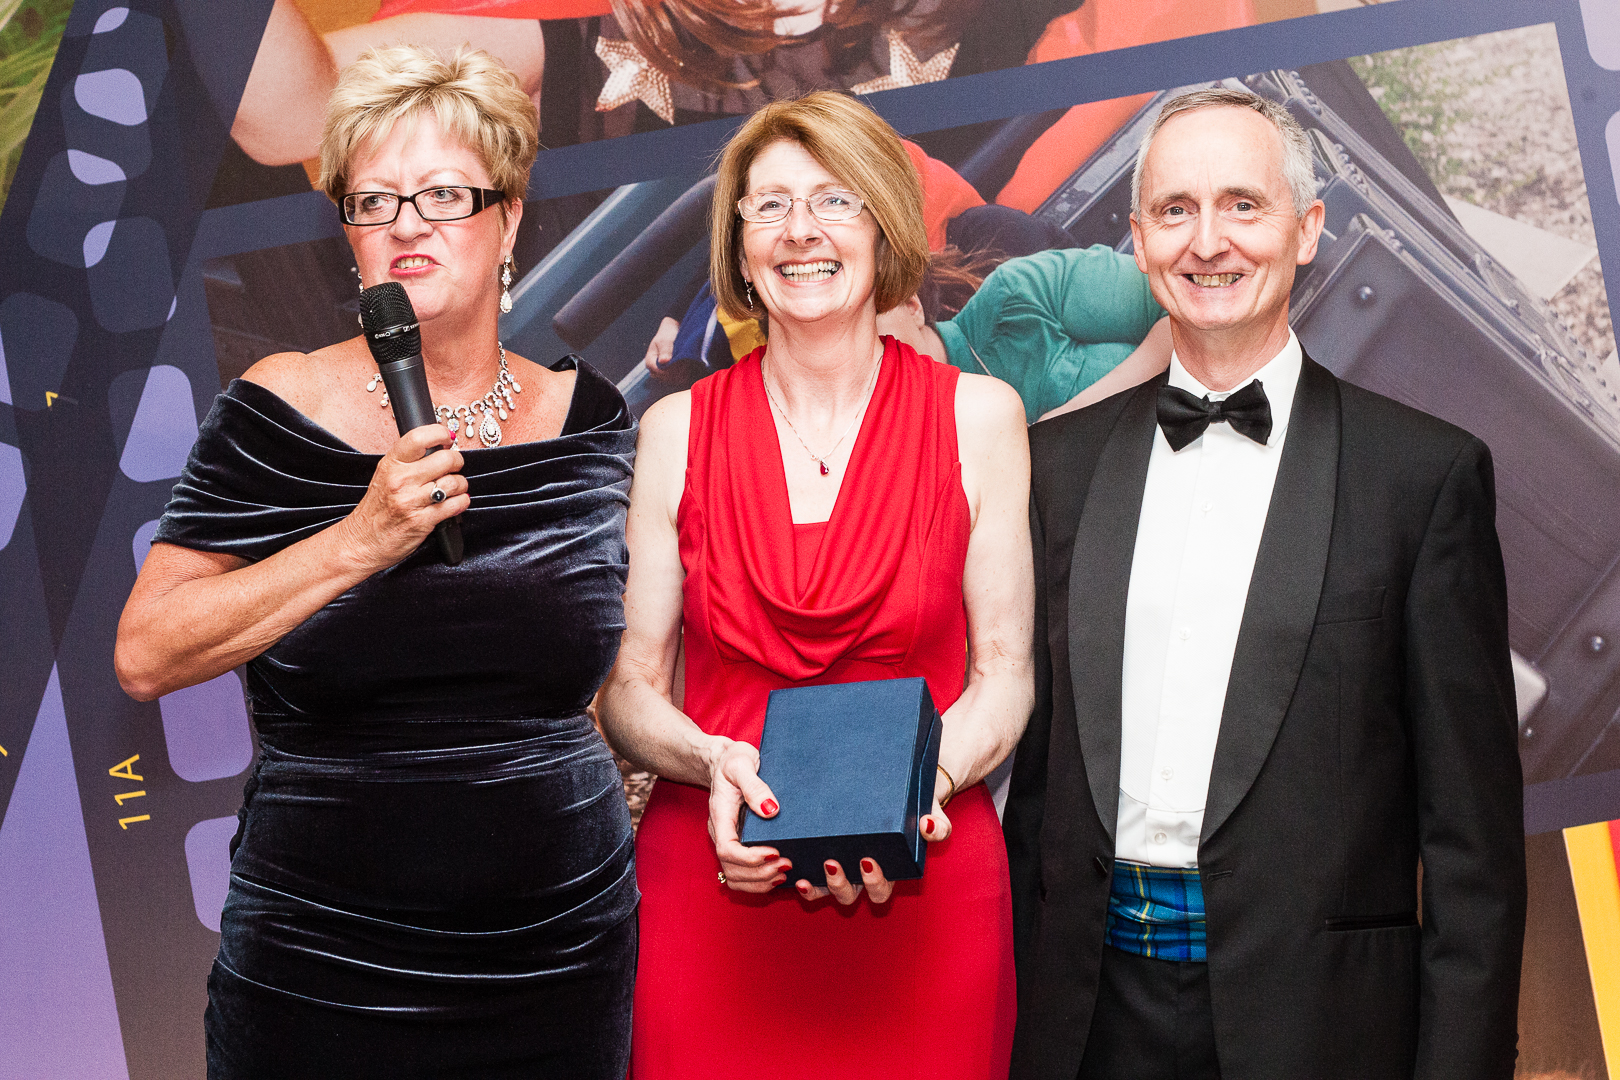 Susan Dudley is Appointed KidsOut Lifetime Ambassador at the 2015 Question of Sport event in London